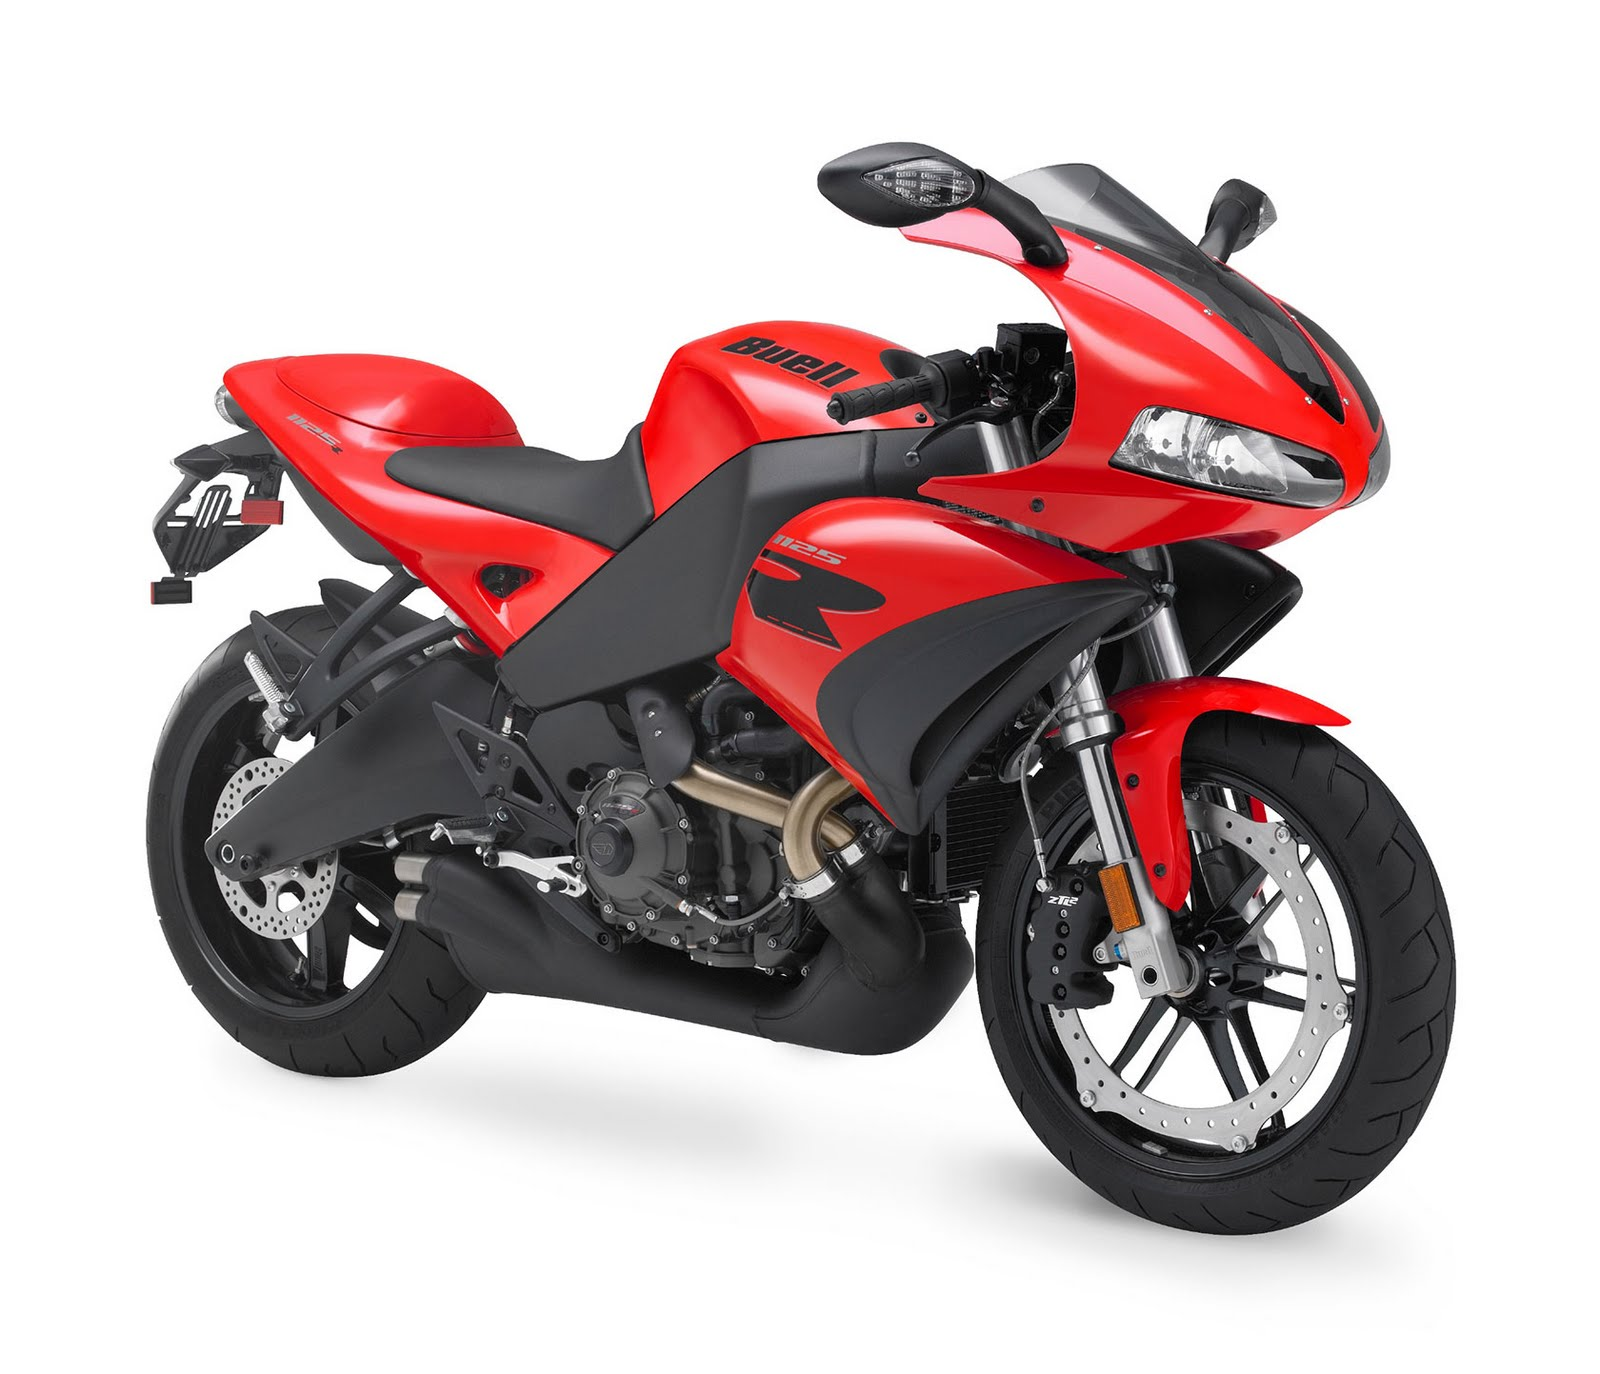 2010 Buell 1125r Motorcycle Wallpapers Gallery